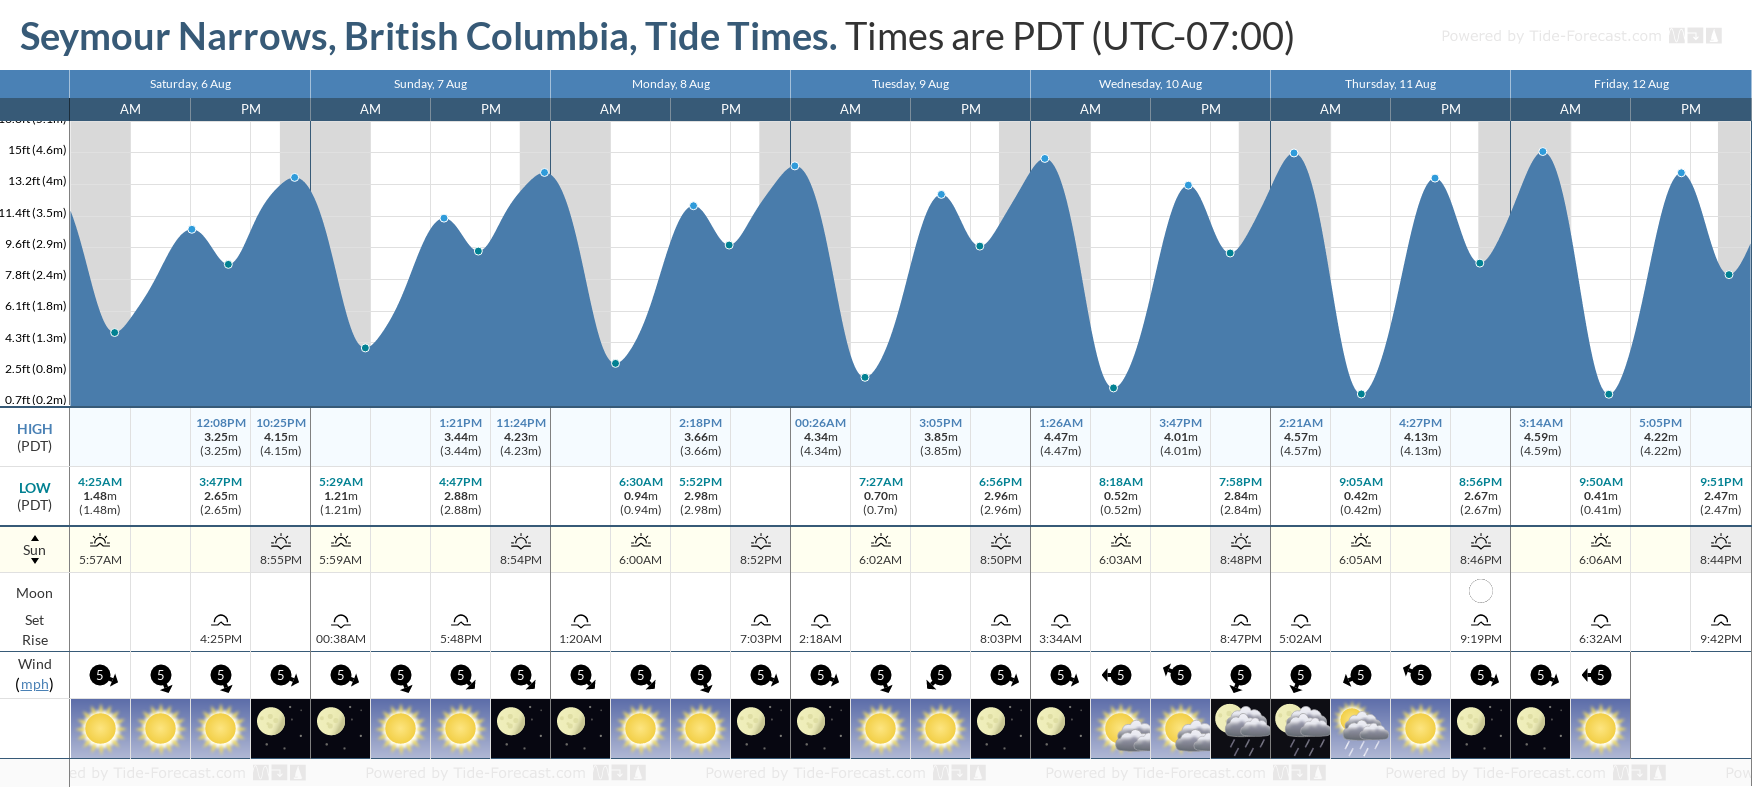 Seymour Narrows, British Columbia Tide Chart including high and low tide tide times for the next 7 days